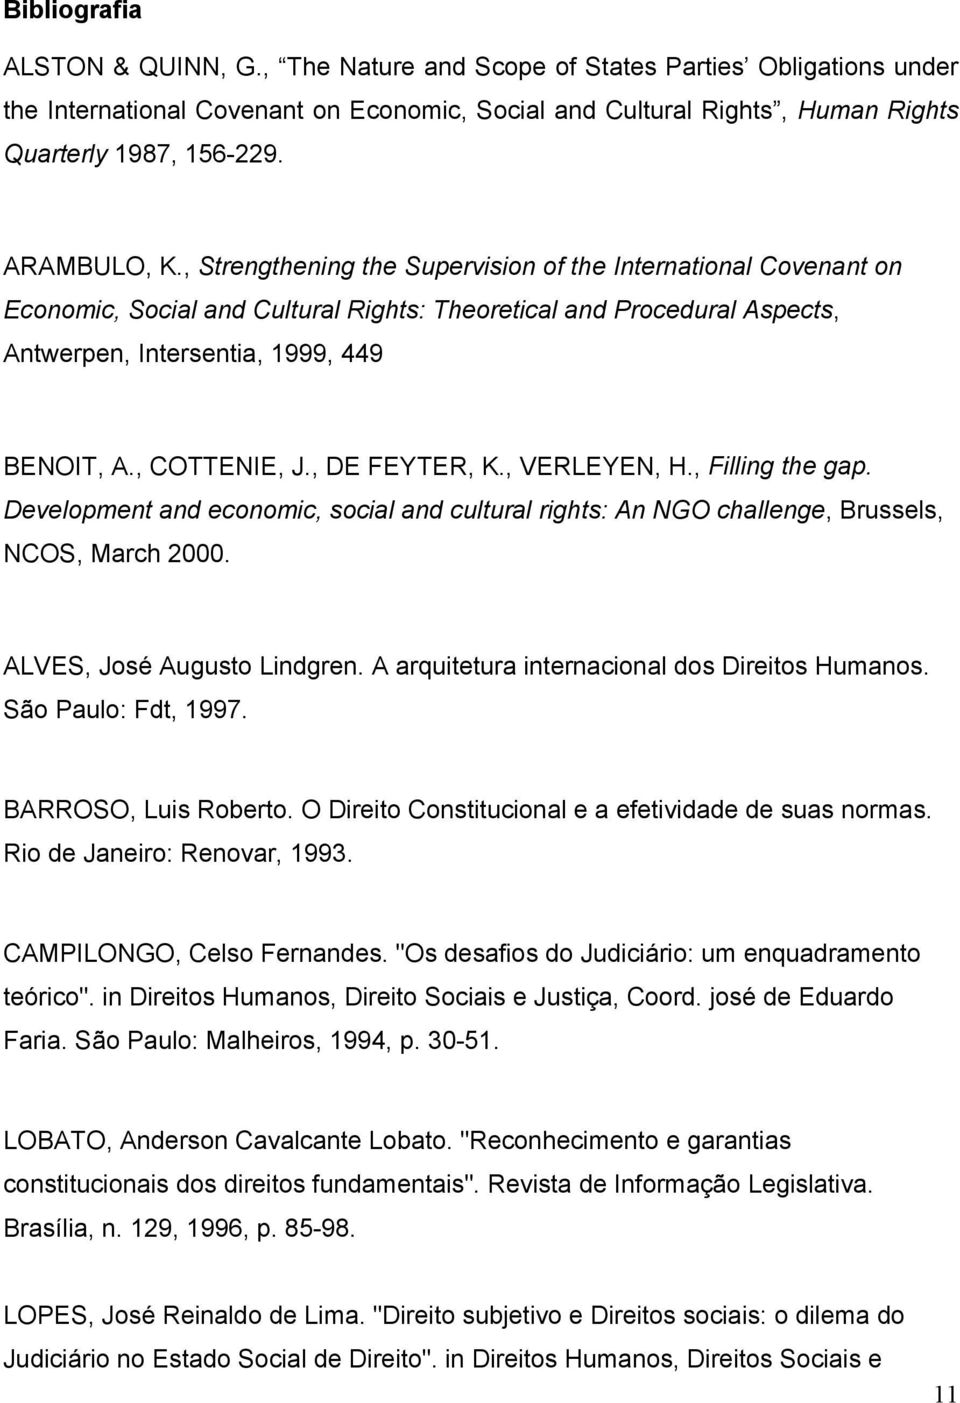 , COTTENIE, J., DE FEYTER, K., VERLEYEN, H., Filling the gap. Development and economic, social and cultural rights: An NGO challenge, Brussels, NCOS, March 2000. ALVES, José Augusto Lindgren.